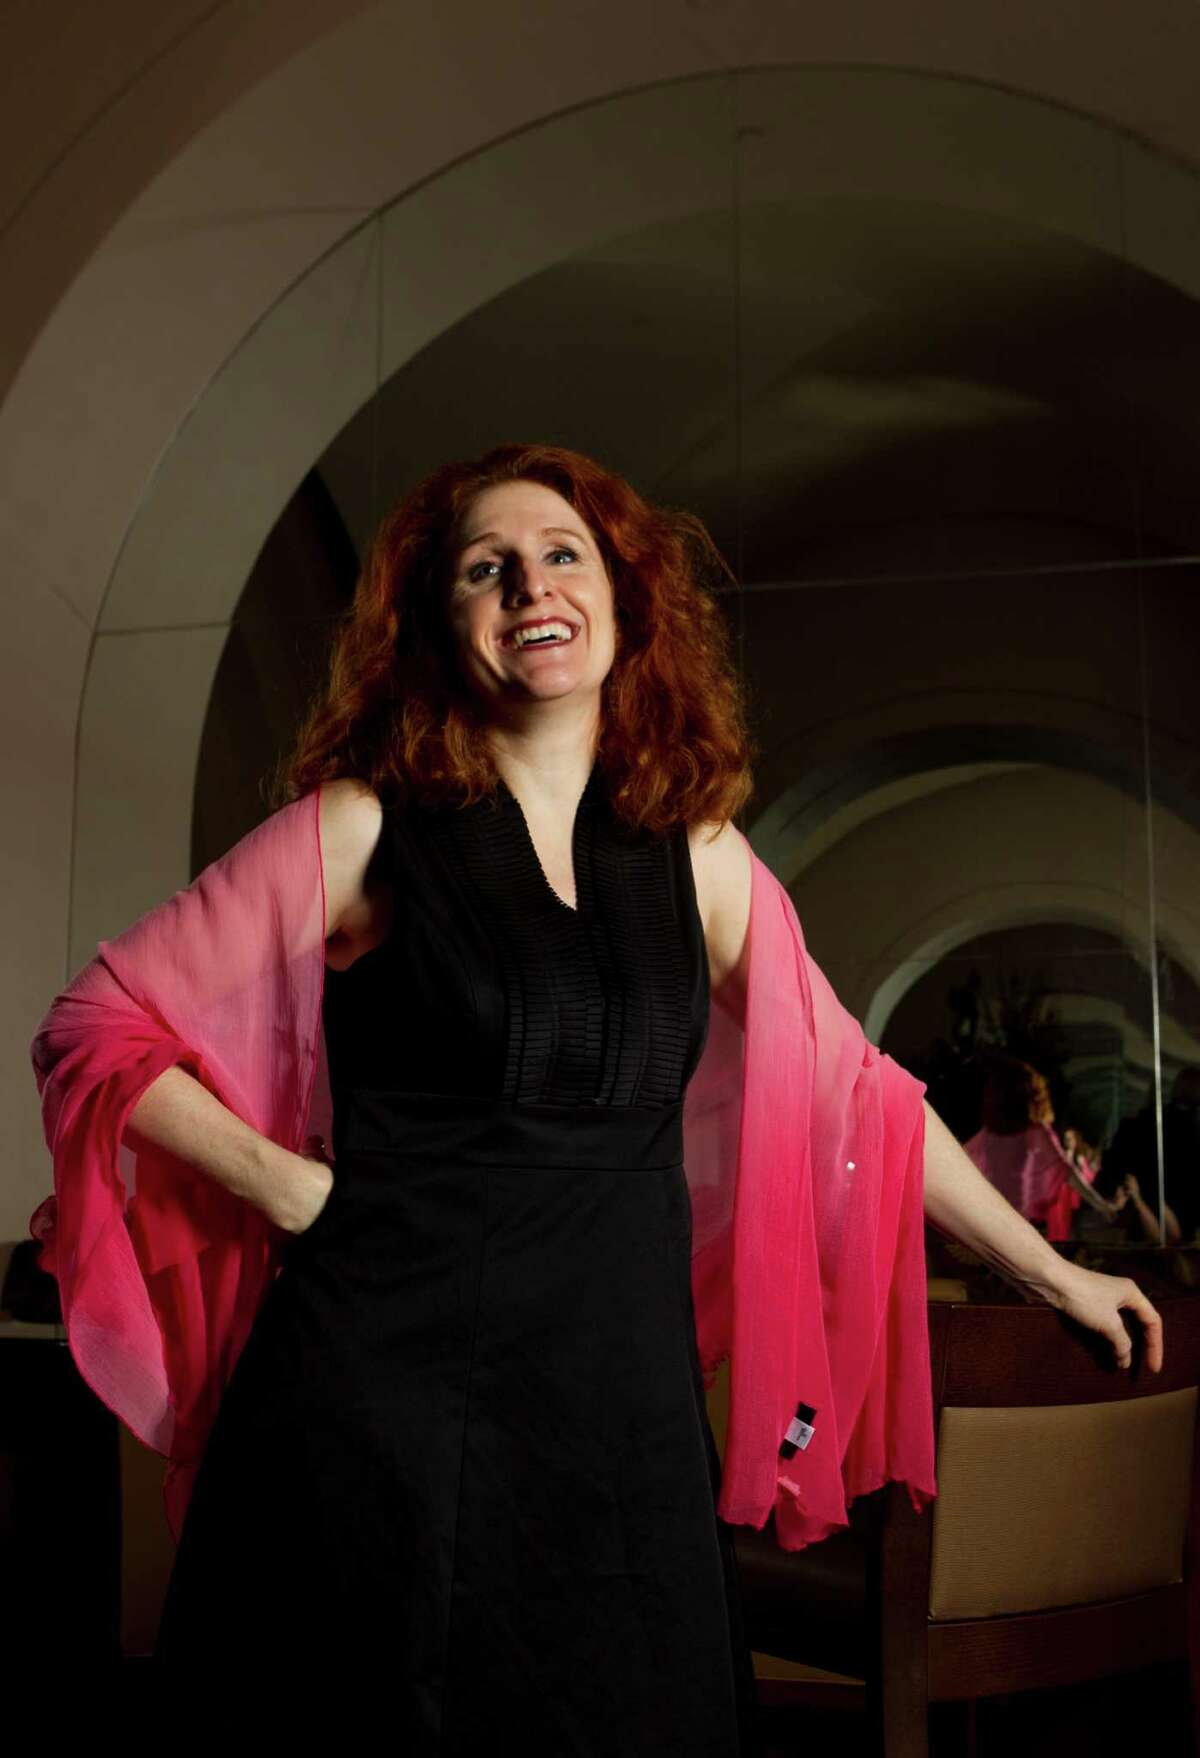 Opera singer Laura Claycomb is quite familiar with performing at the Wortham Center.